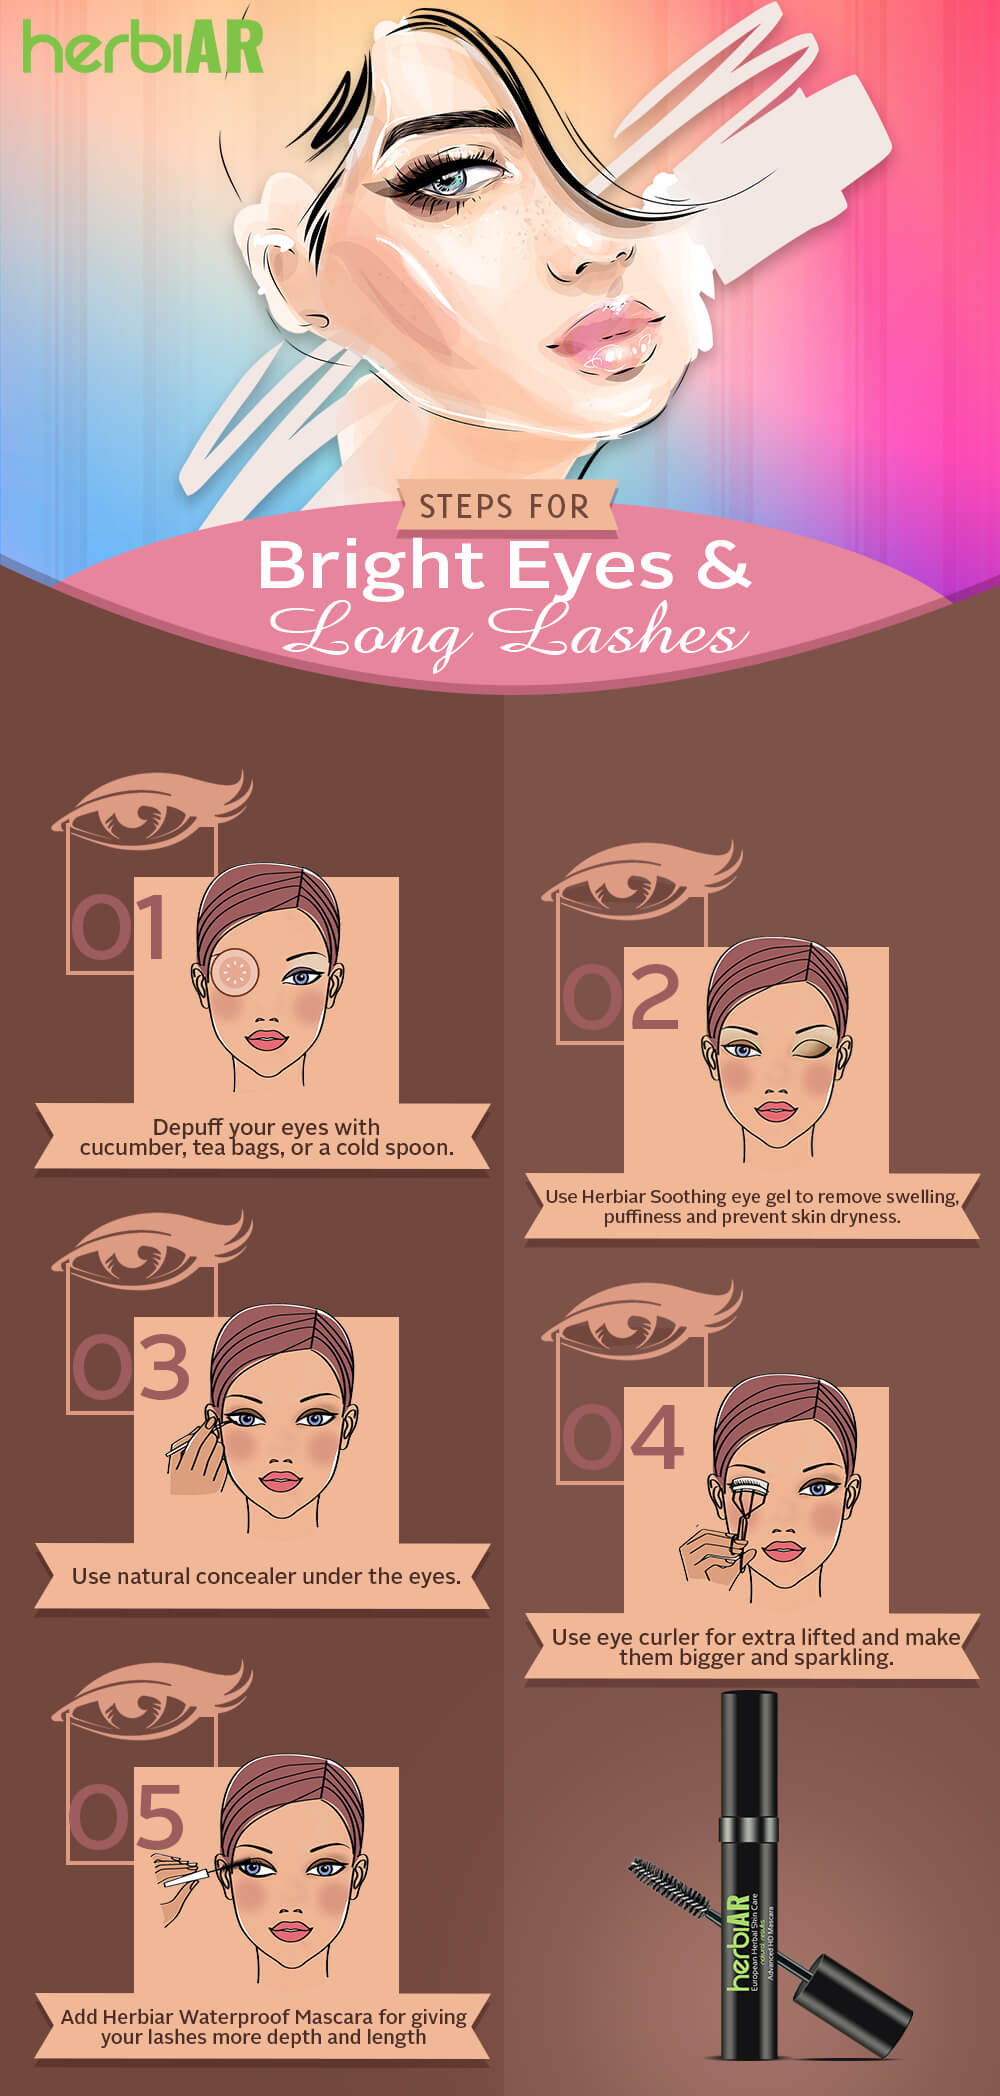 6 steps for bright eyes and long lashes